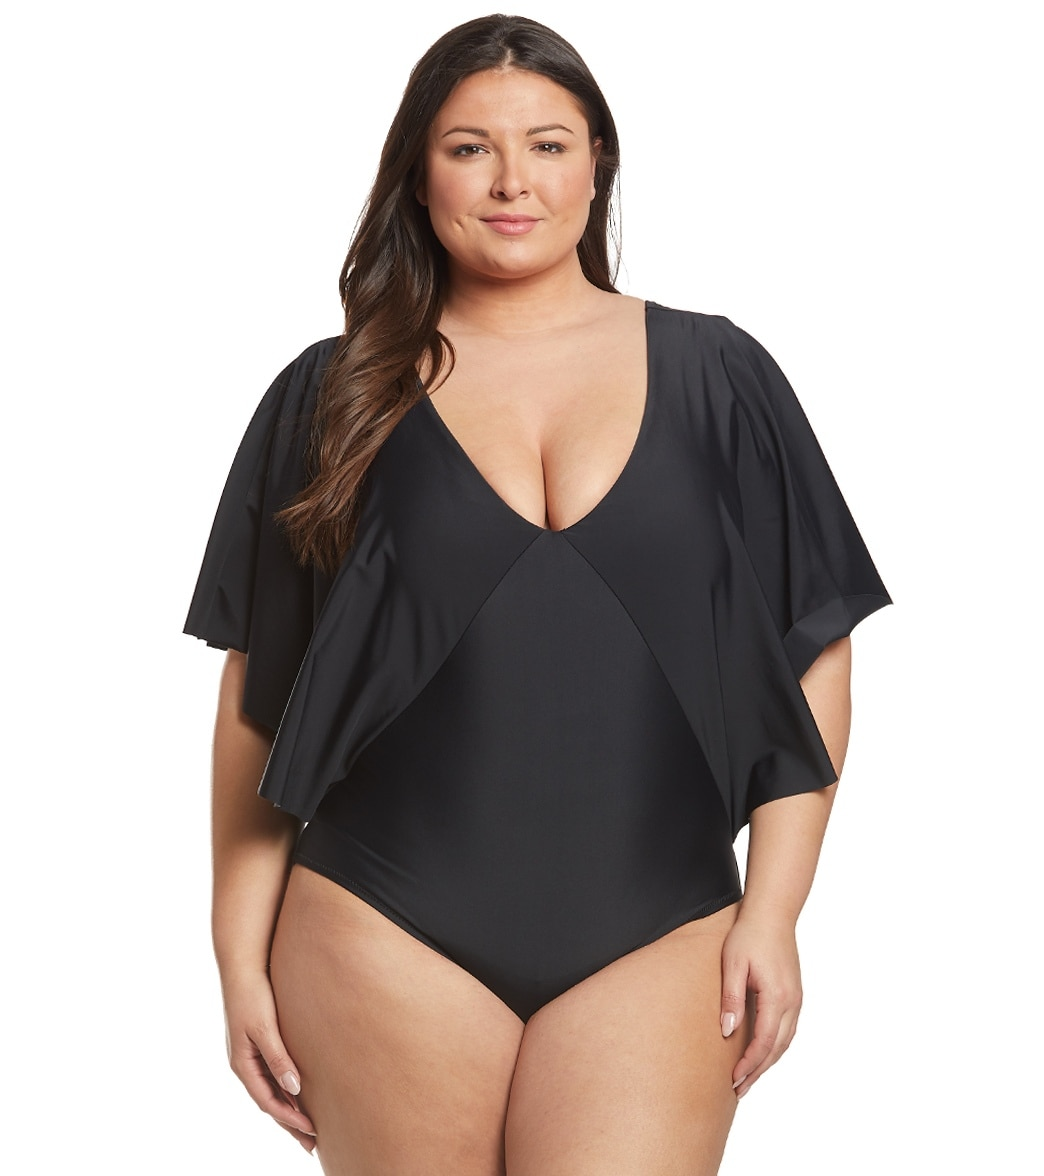 9198ef5960eef Raisins Plus Size Samba Solids Stingray One Piece Swimsuit at  SwimOutlet.com - Free Shipping